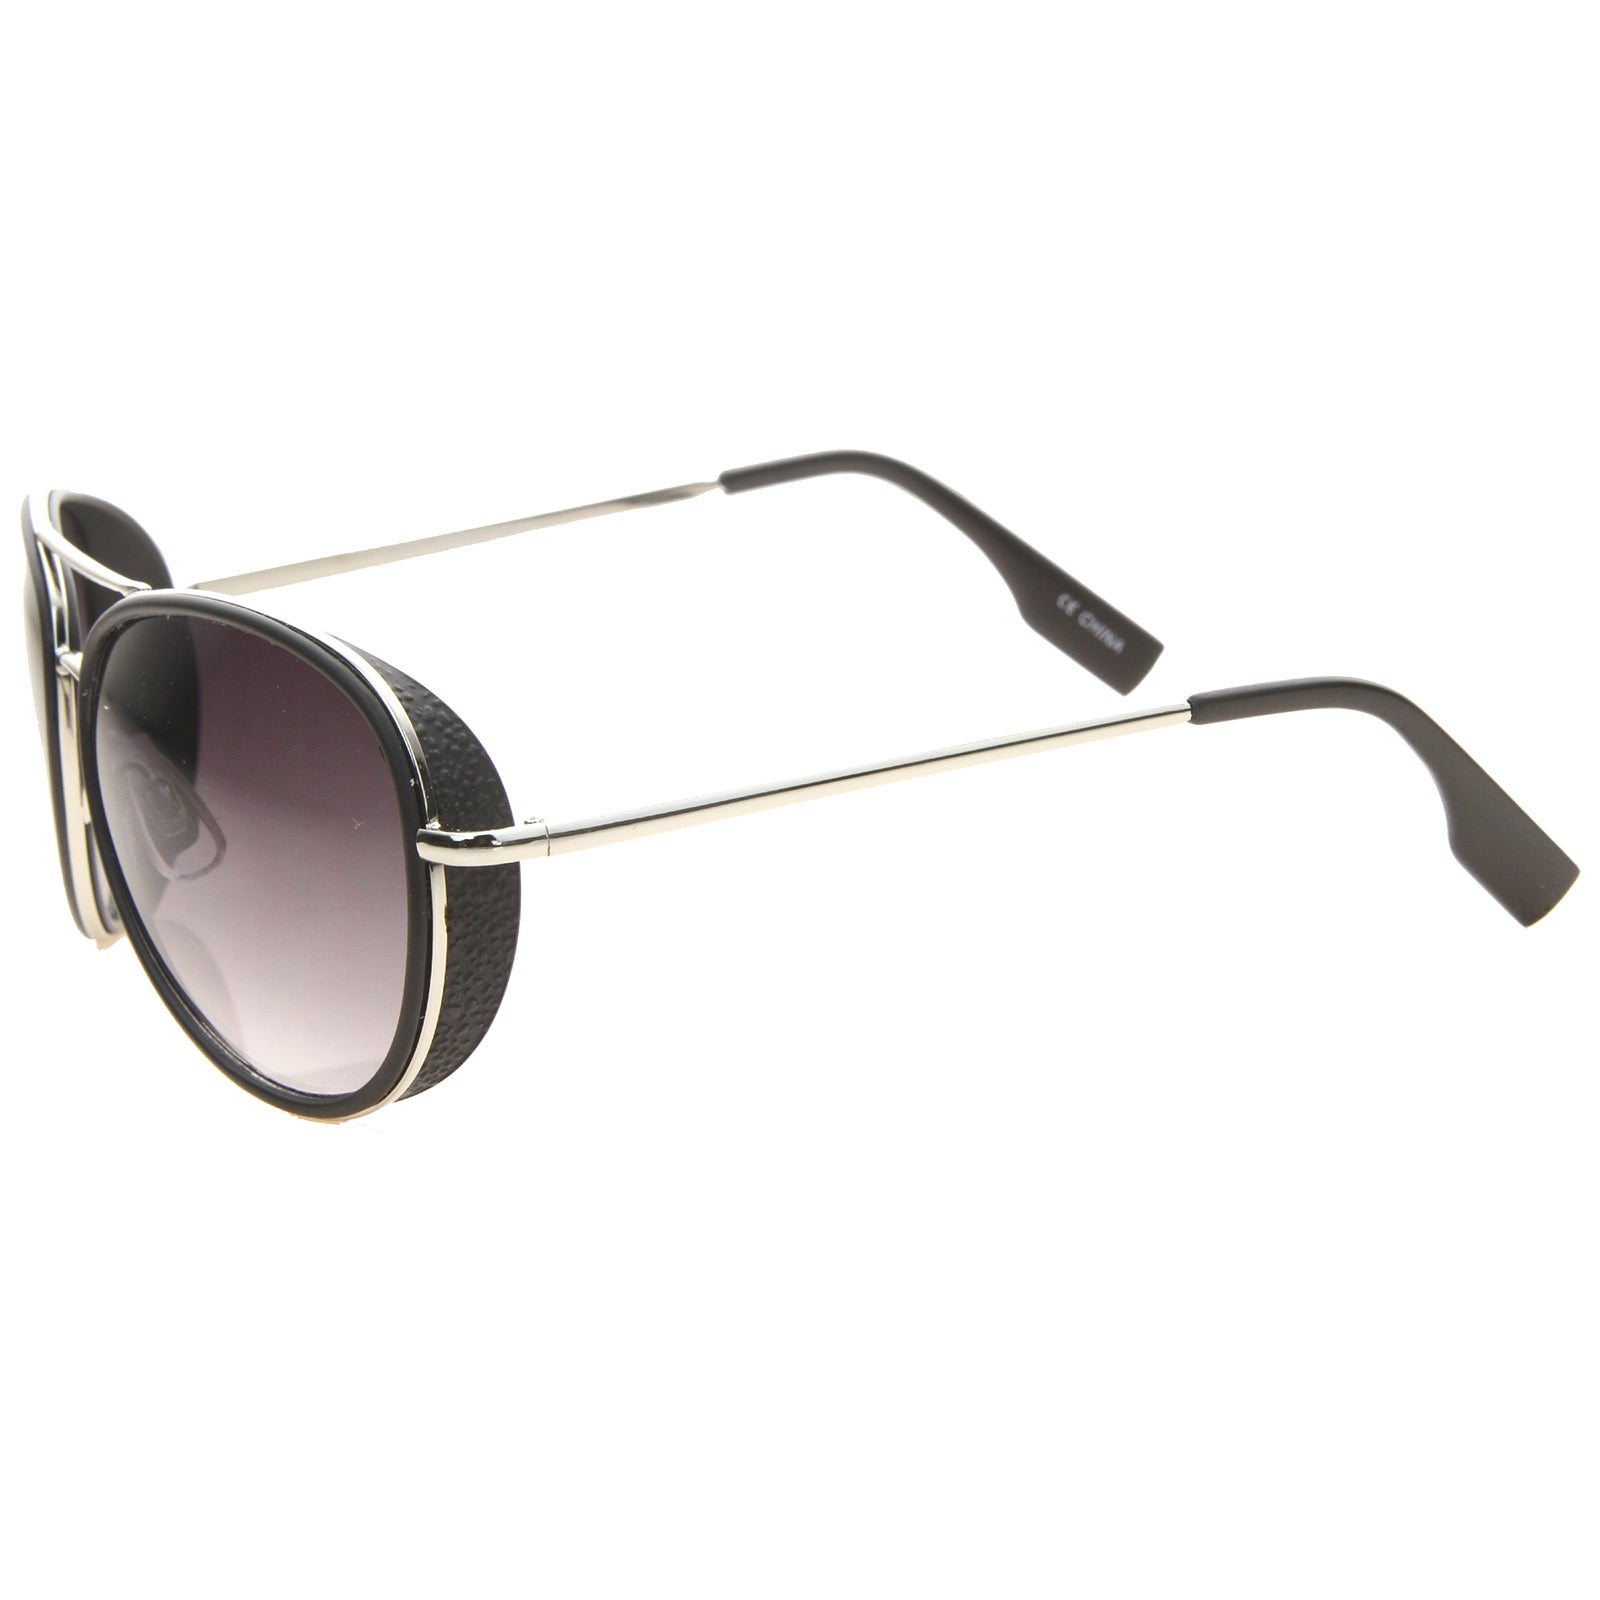 Womens Aviator Sunglasses With UV400 Protected Gradient Lens - sunglass.la - 7